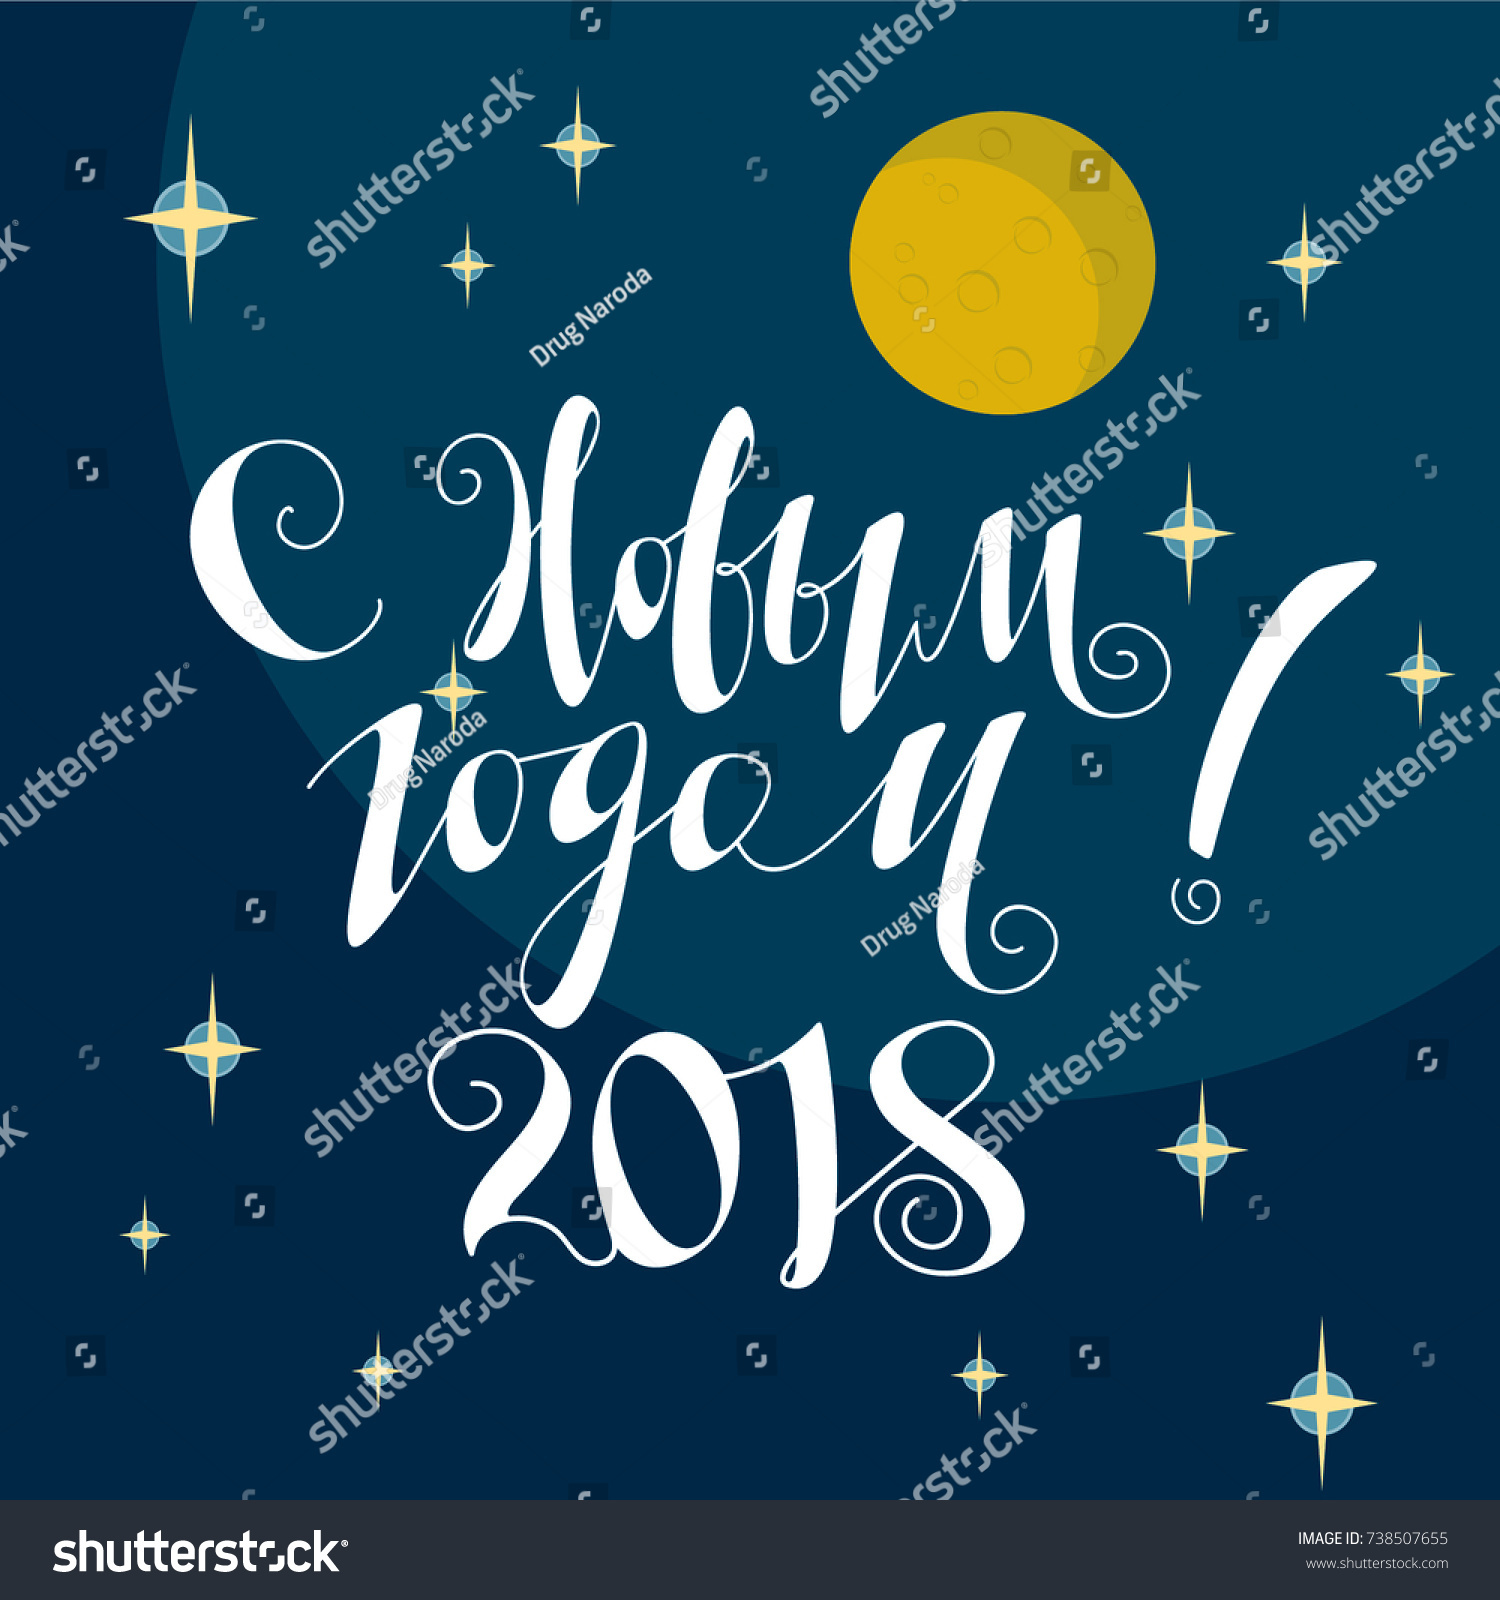 New year 2018 greetings night winter stock vector royalty free new year 2018 greetings with night winter sky moon and stars and russian calligraphic logo lettering m4hsunfo